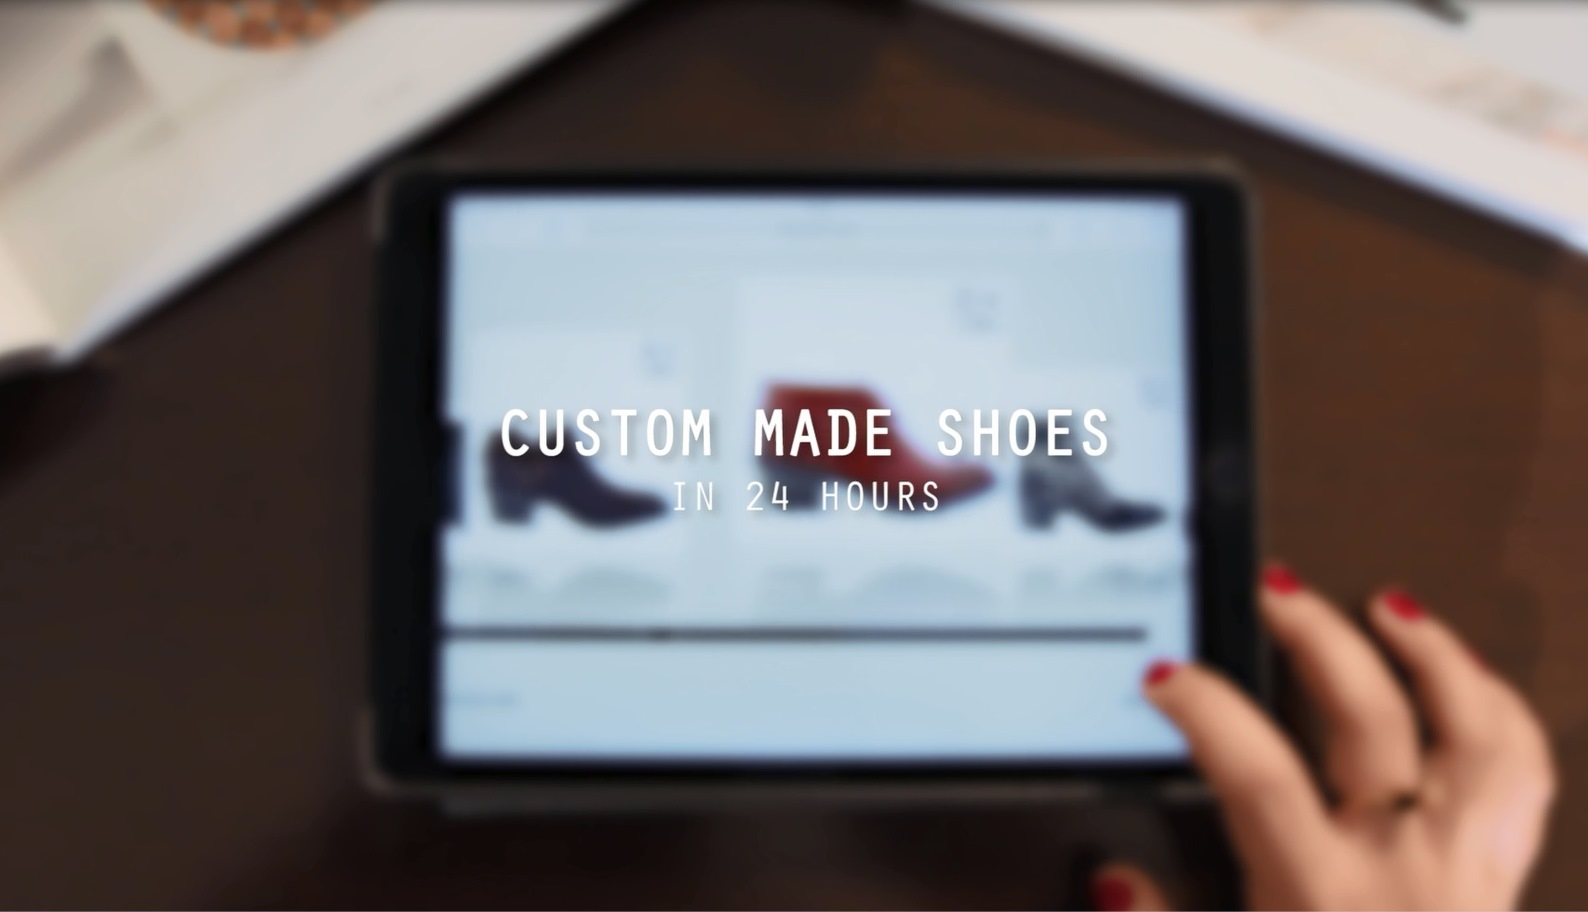 Custom Made Shoes in 24 hours